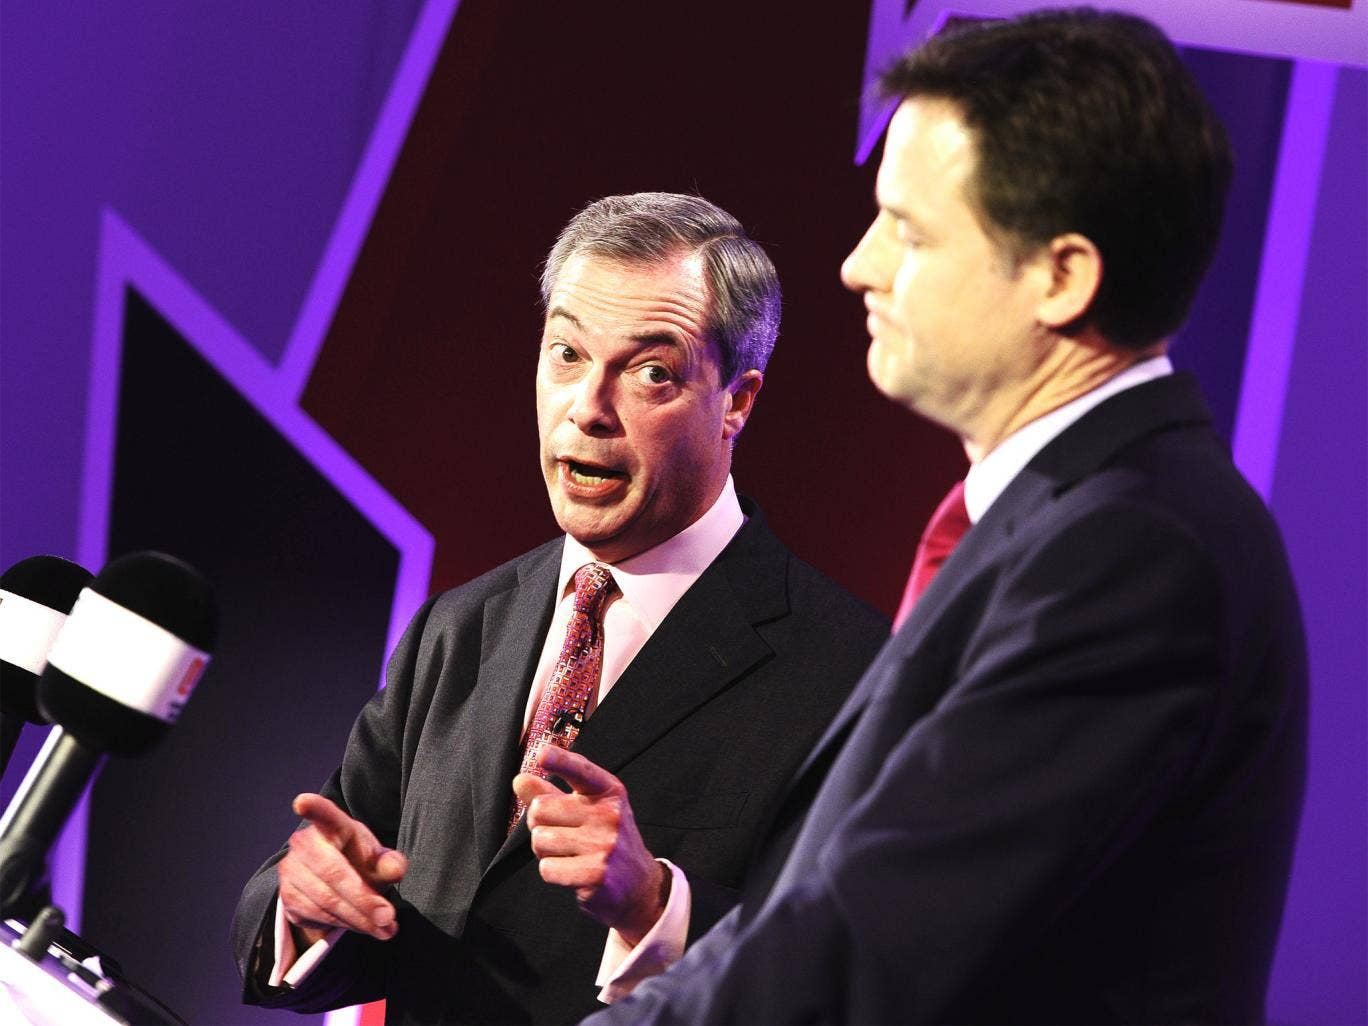 Farage and Clegg will go head-to-head again on Wednesday